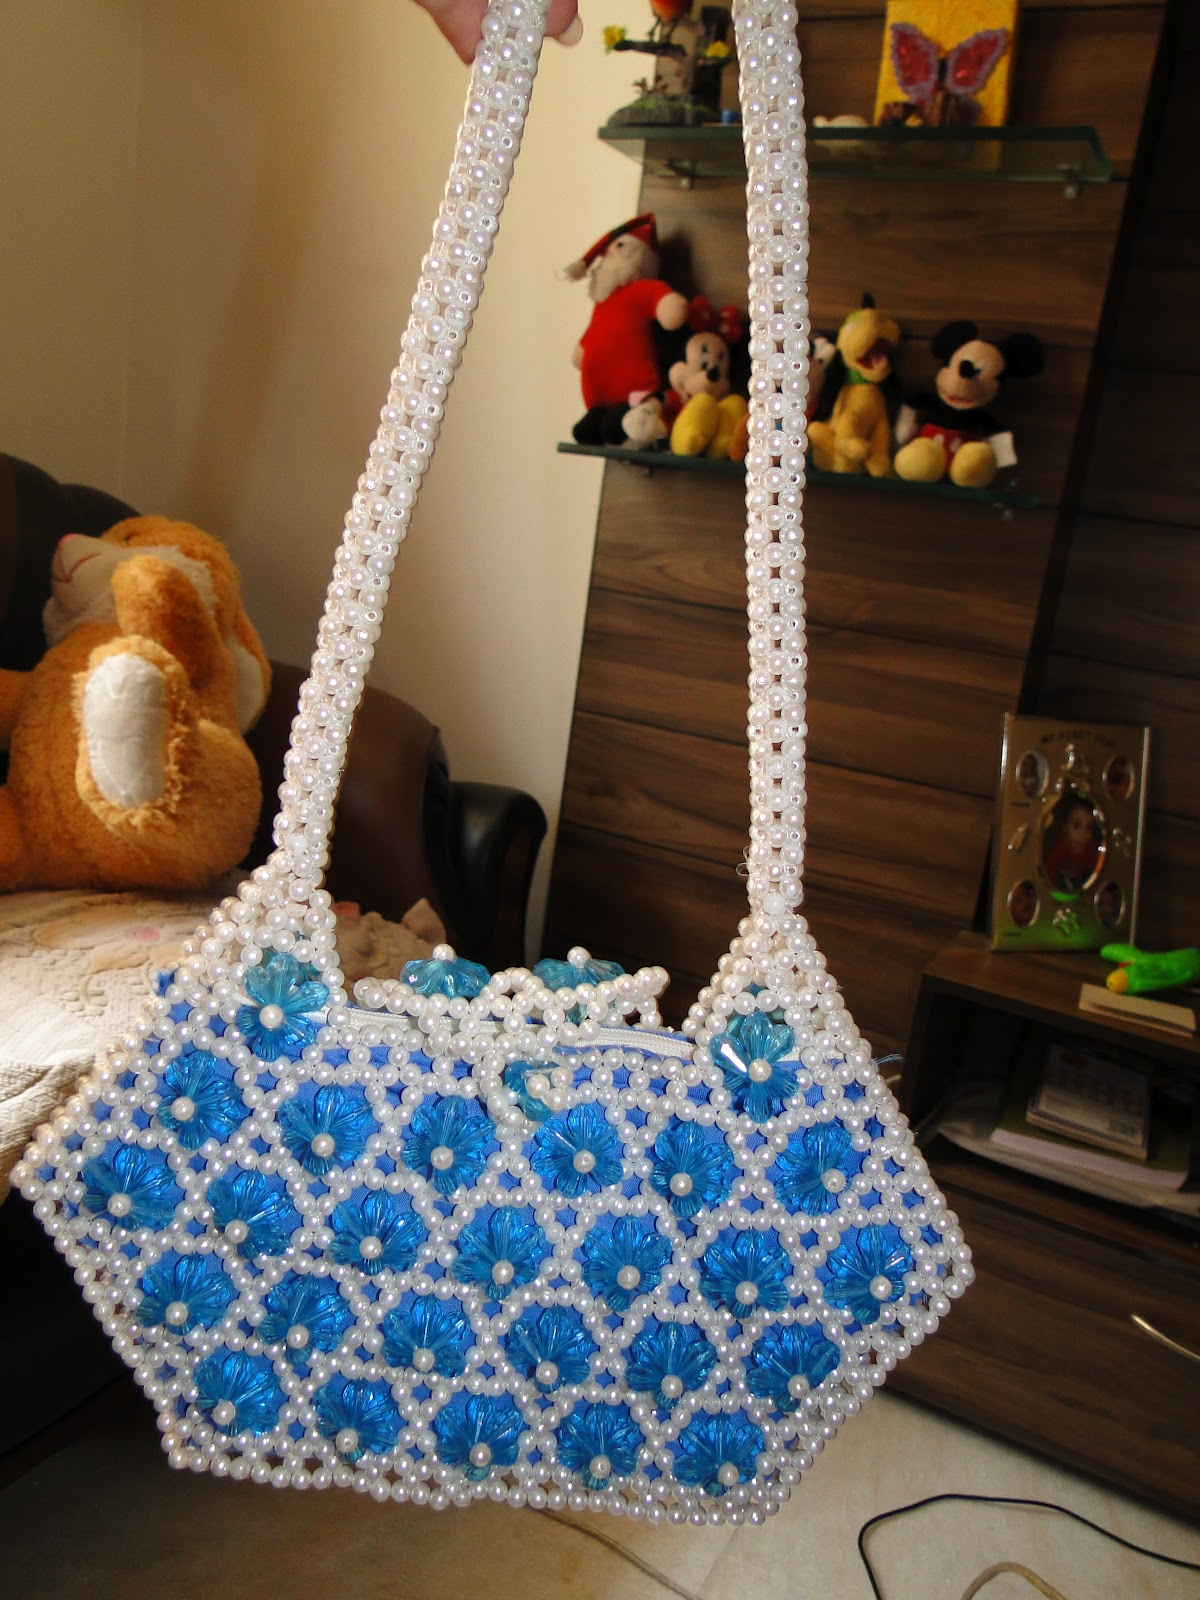 ladies shop of beads bag for bags hand sale